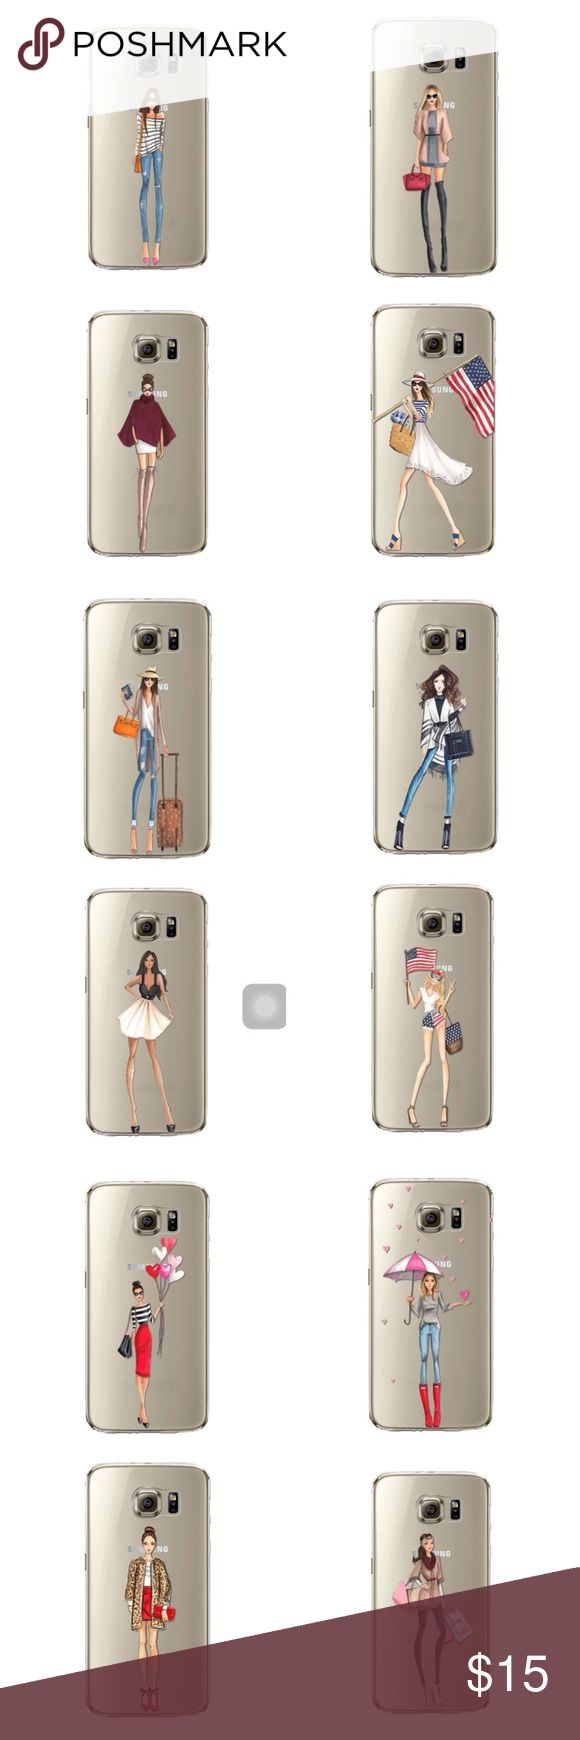 Pre-Order Fashion Girl Case Samsung Galaxy S7 Edge Available for pre-order, comment which case you'd like and I'll create a custom listing and tag you when it comes in  Accessories Phone Cases